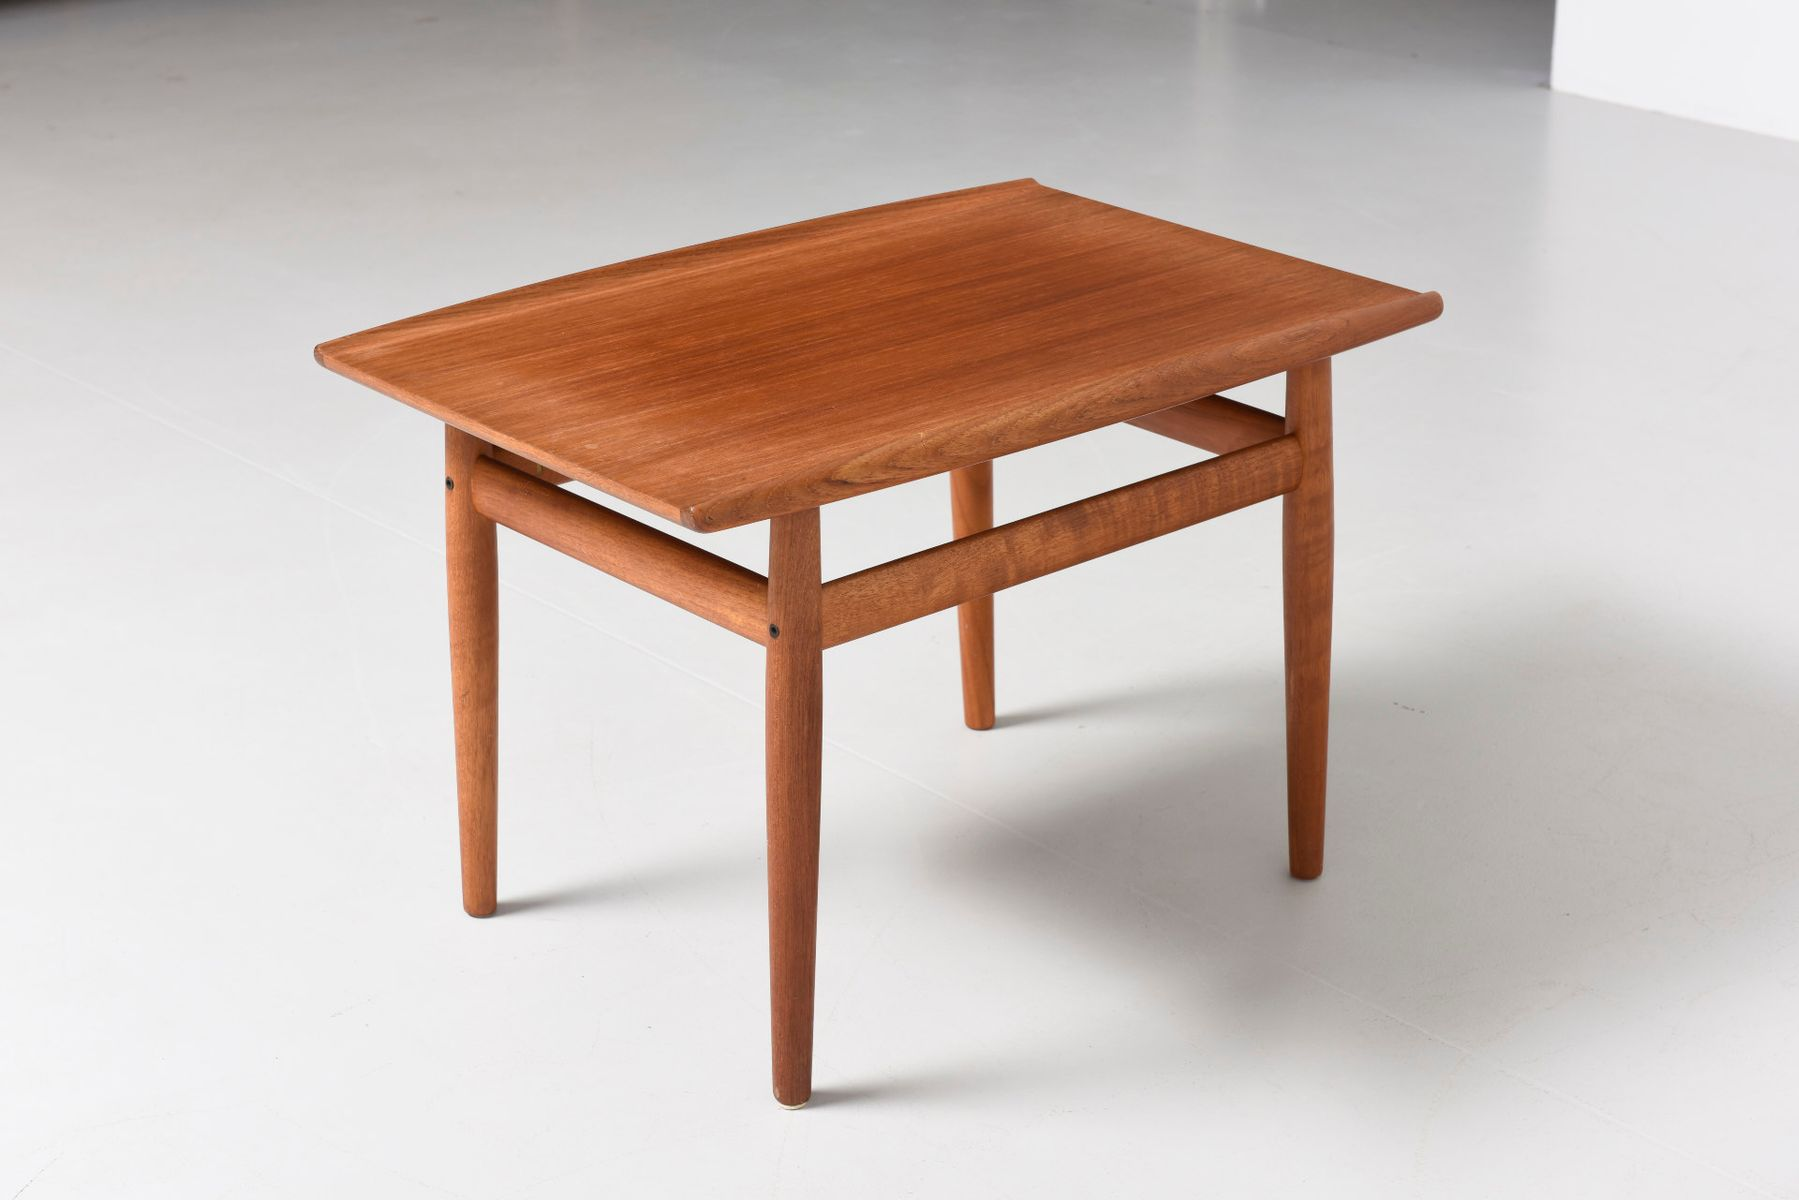 teak side table by grete jalk for glostrup s for sale at pamono - teak side table by grete jalk for glostrup s